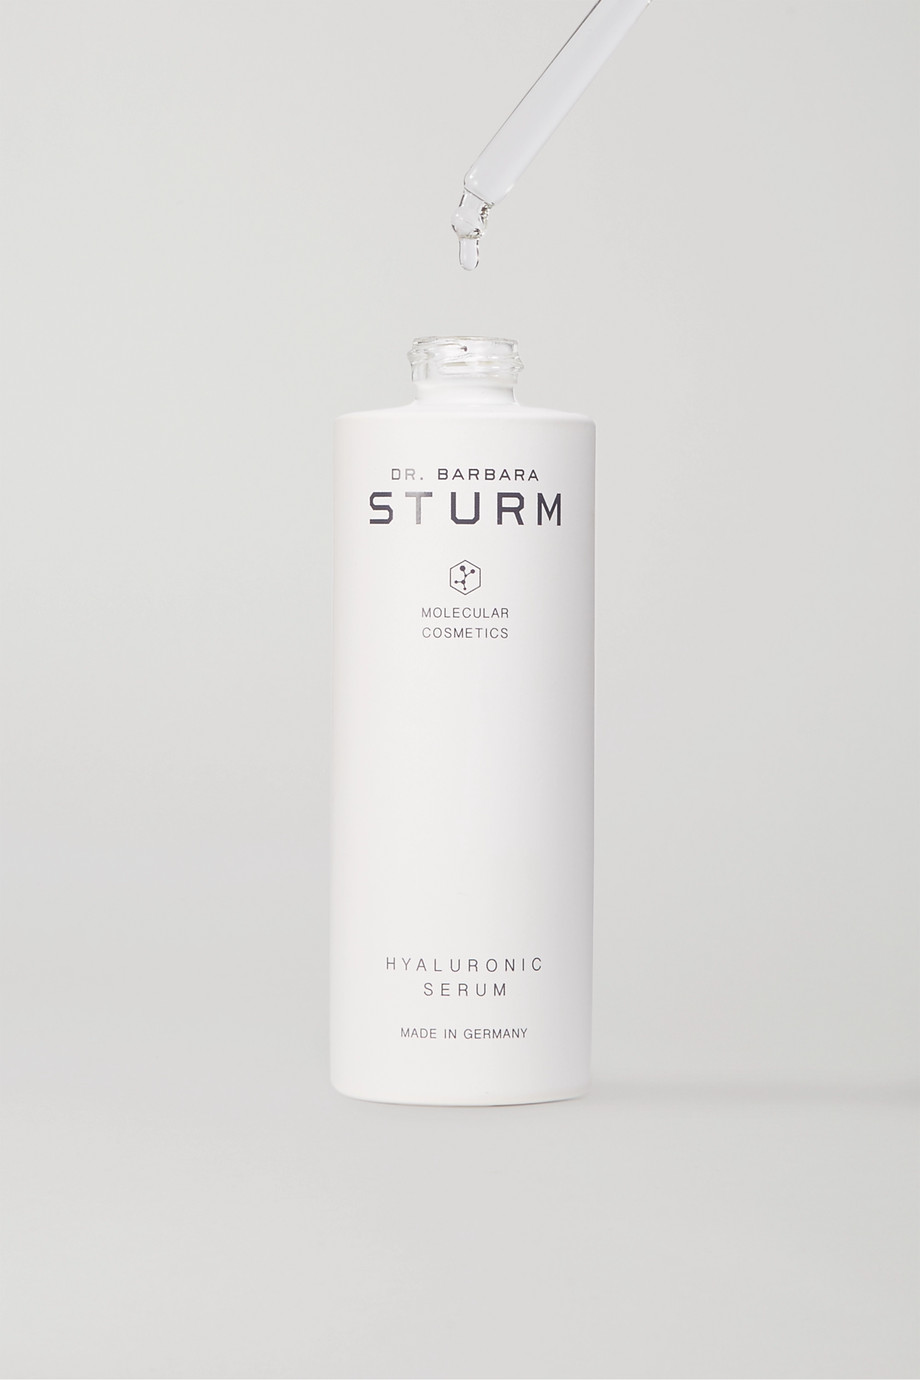 Dr. Barbara Sturm Sérum hyaluronique, 100 ml